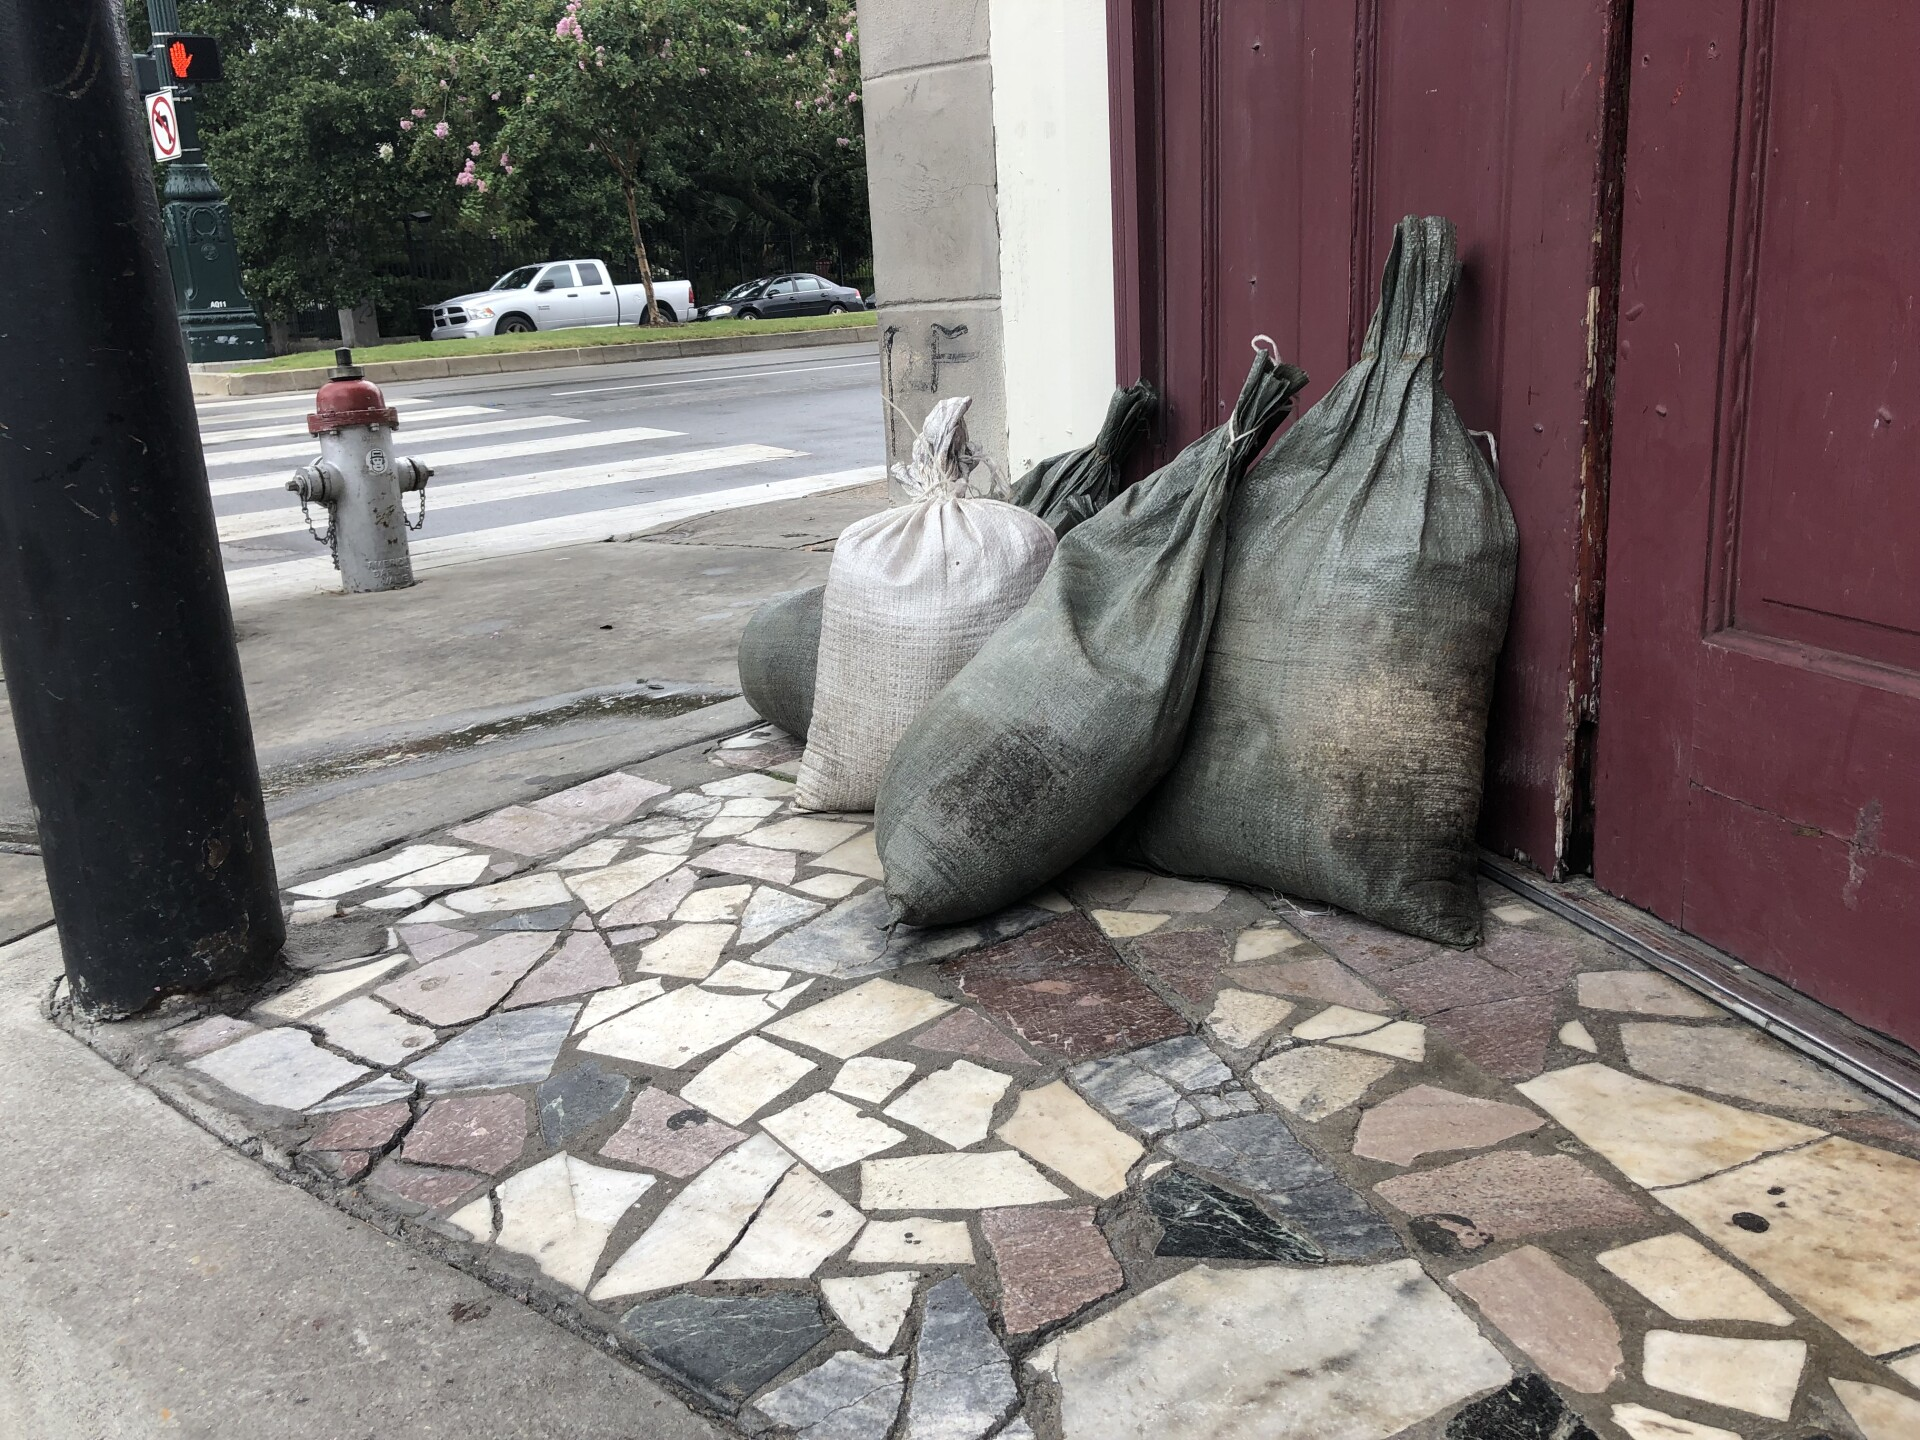 New Orleans businesses and residents prepare for floods